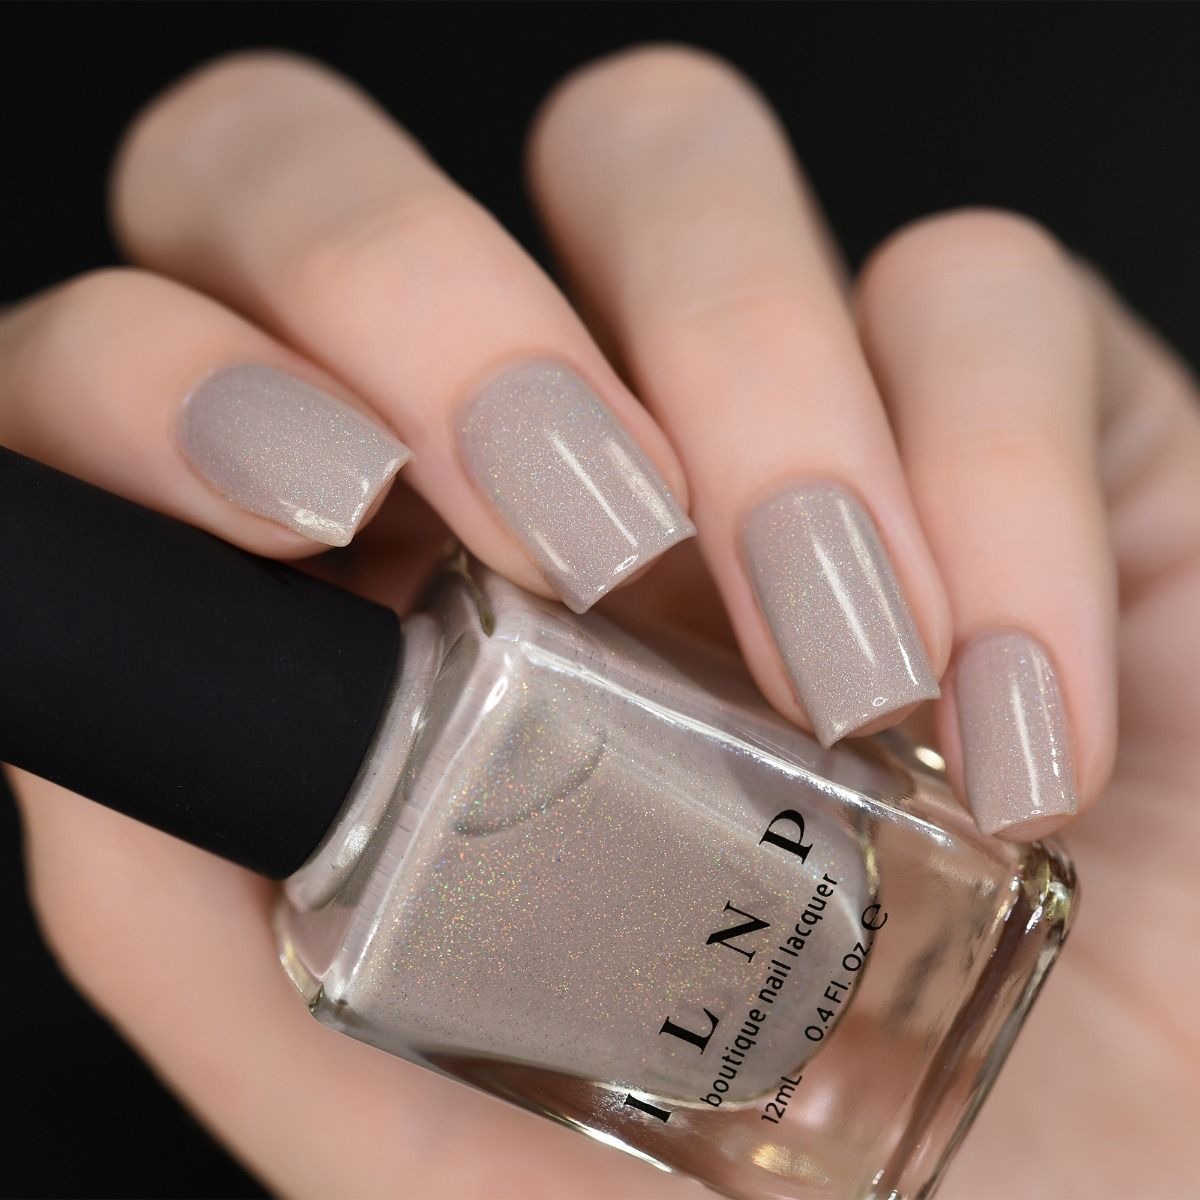 Set In Stone - Creamy Greige Holographic Nail Polish by ILNP